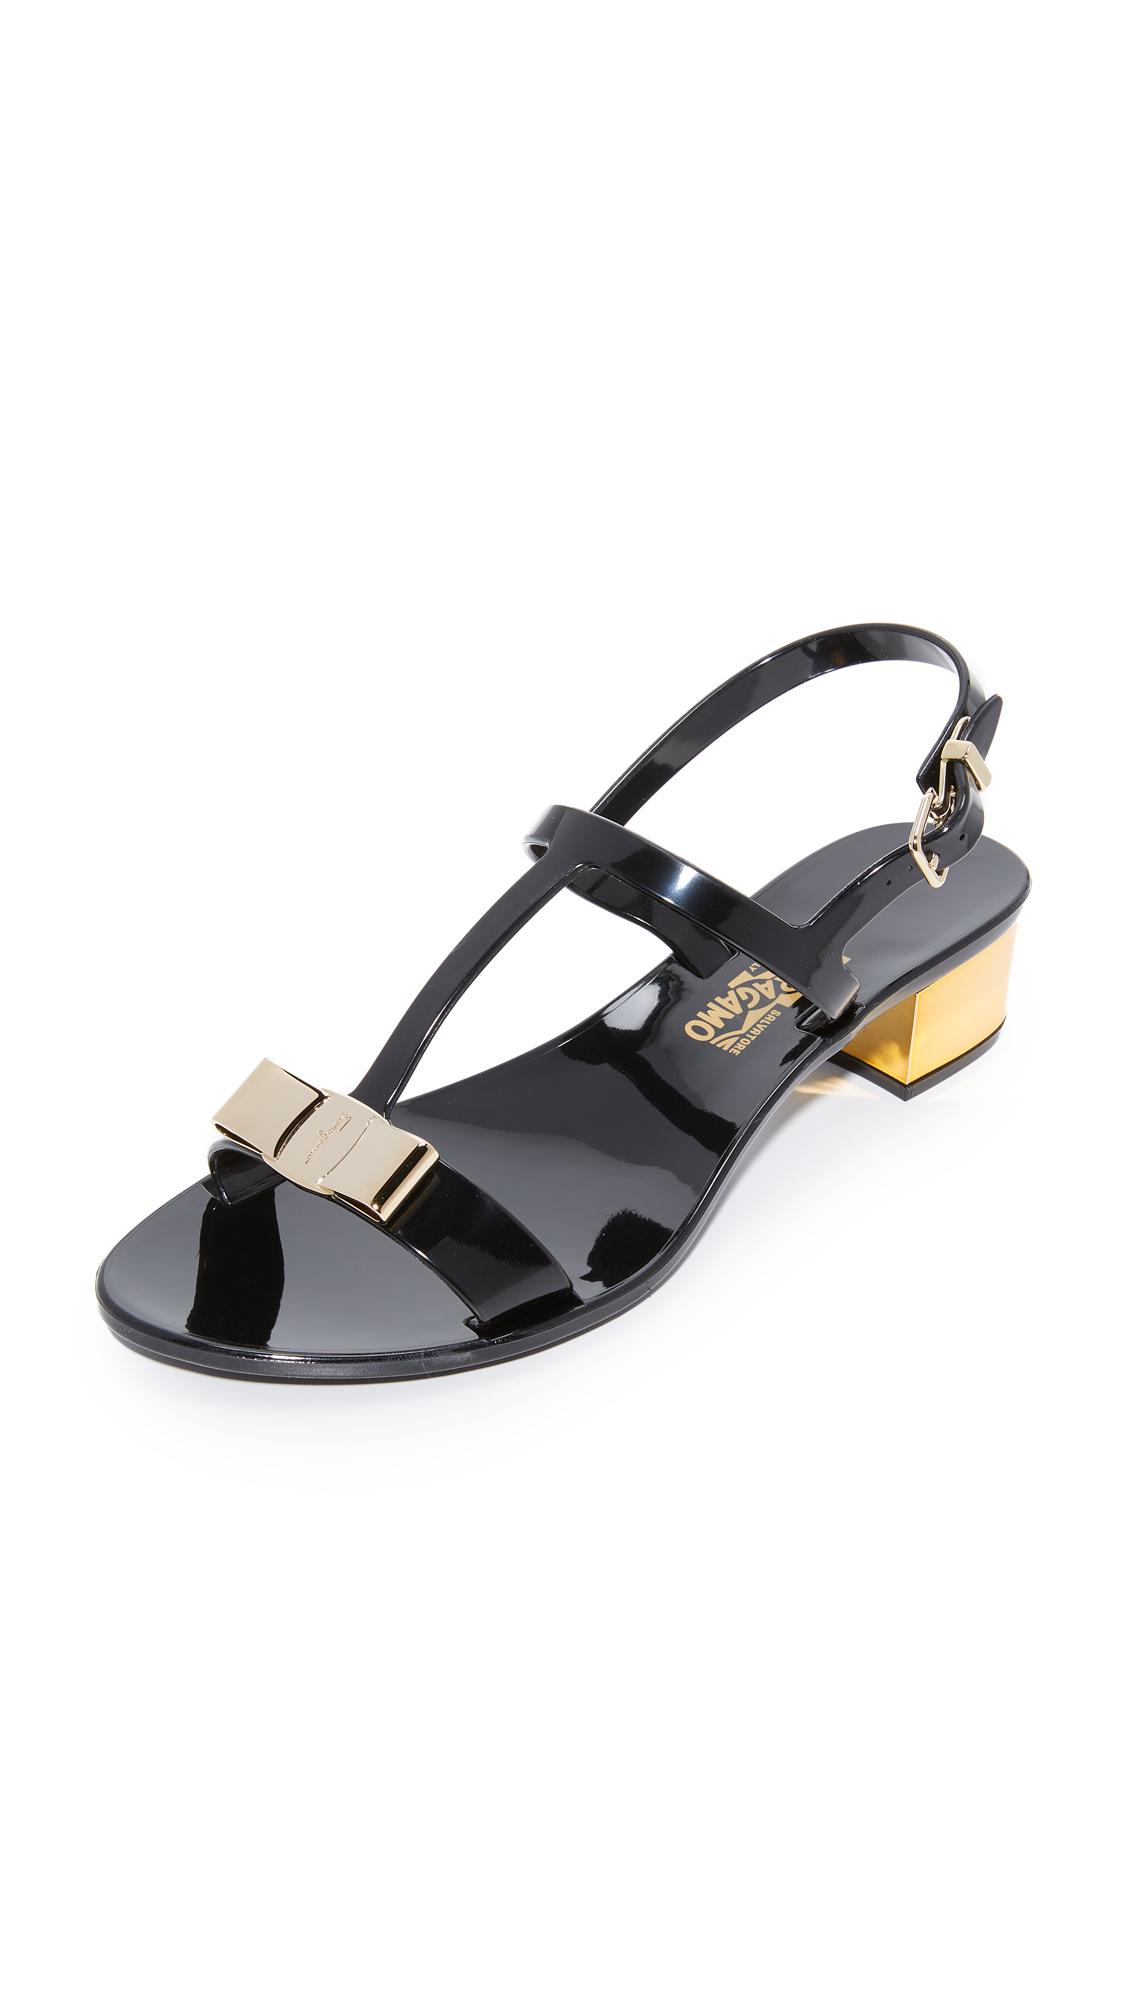 Salvatore Ferragamo Favilia slingback sandals Get Online Cheap Visit Cheap Sale Very Cheap 07MGrl4HO